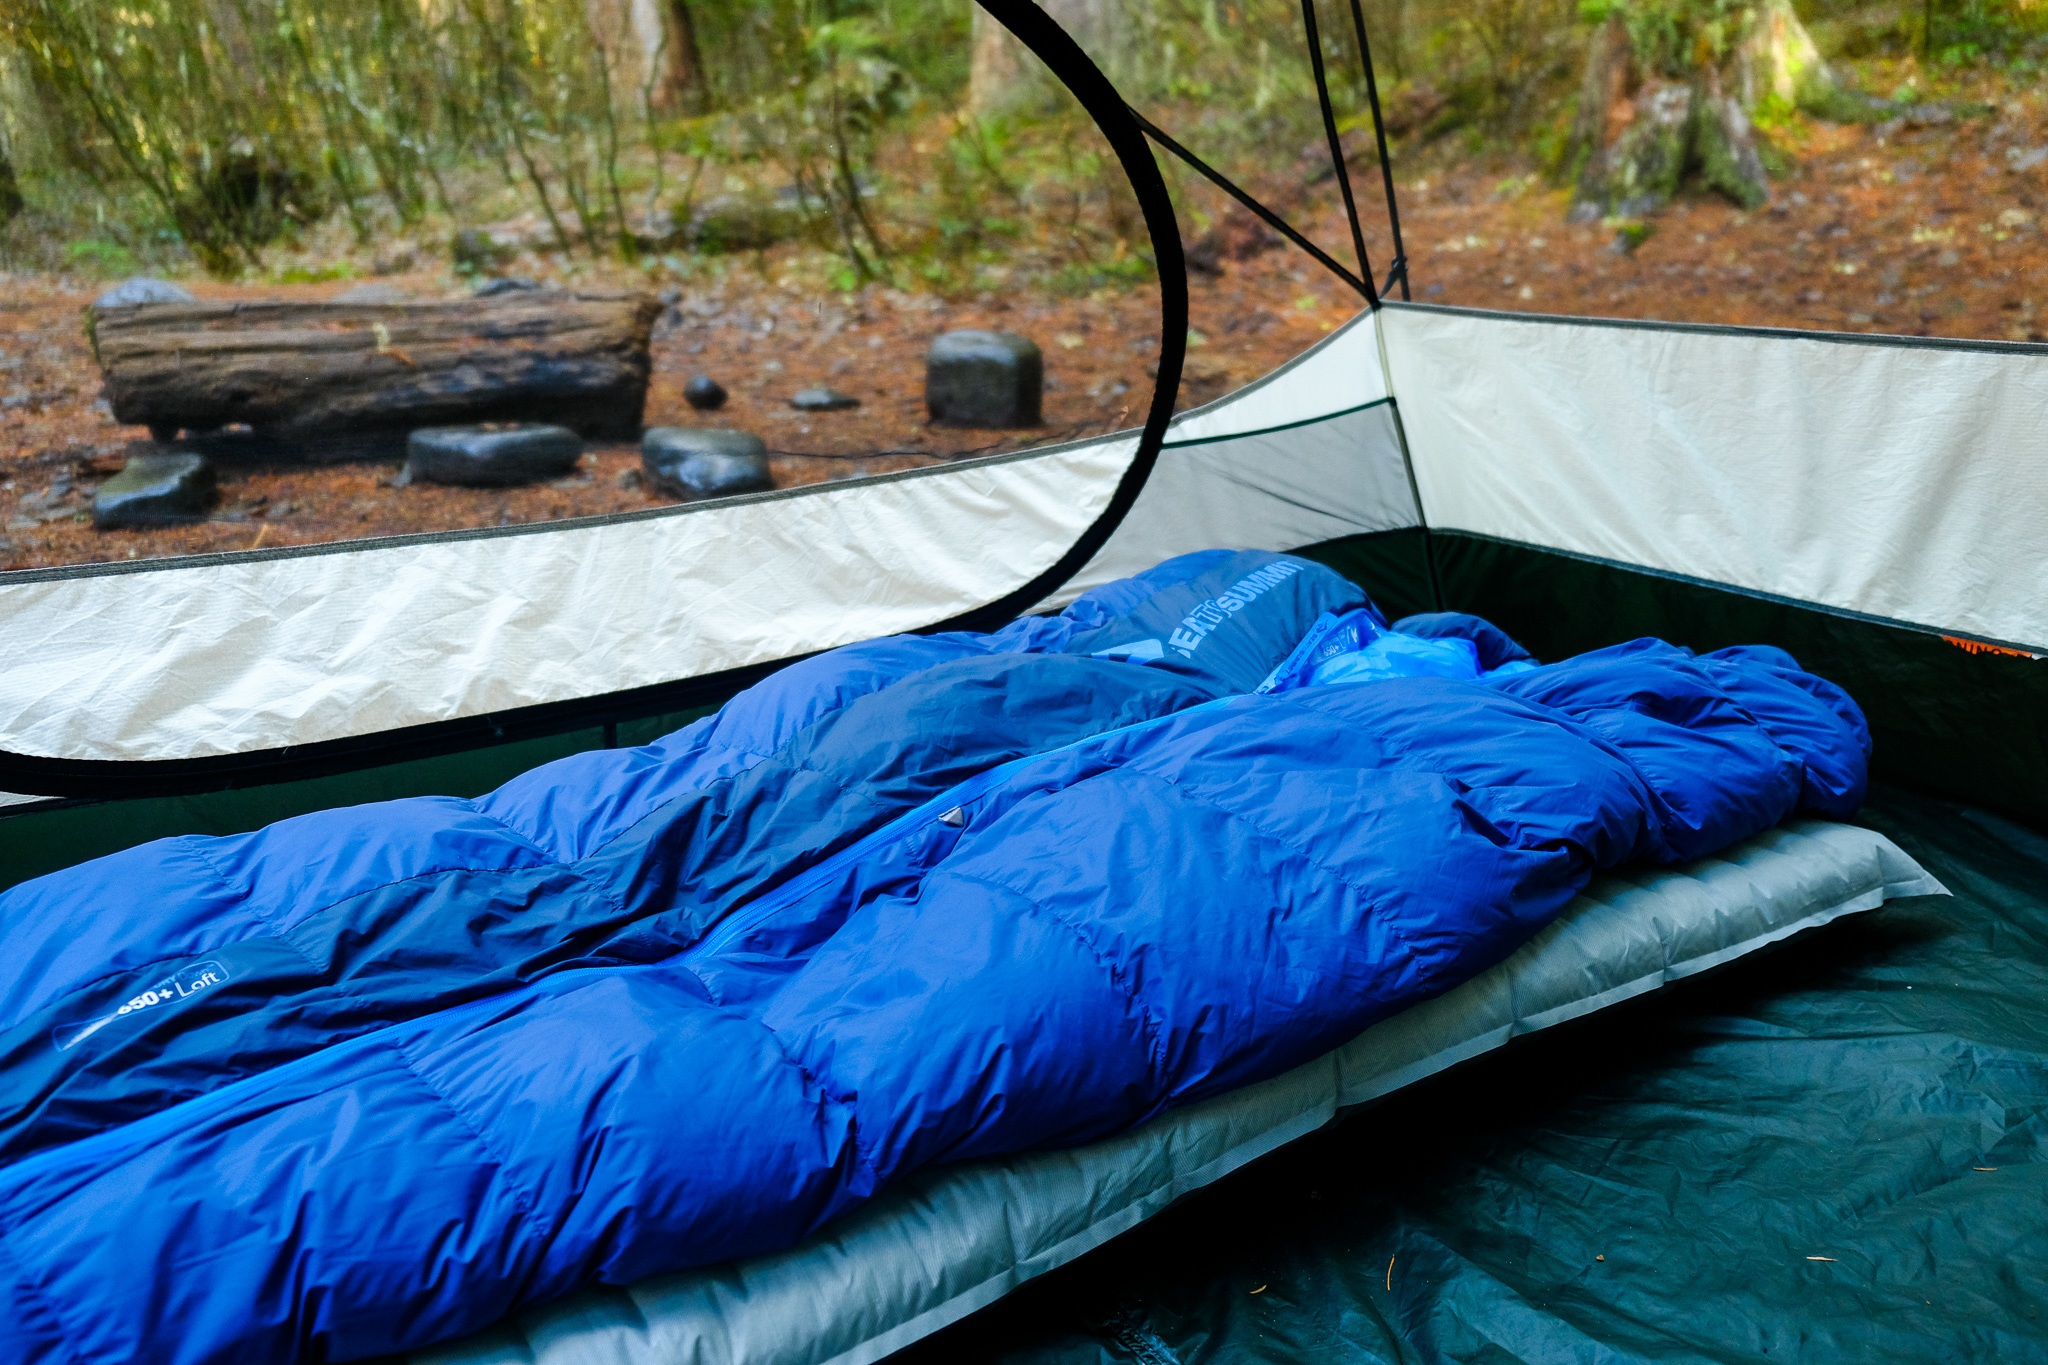 Sea to Summit sleeping bag review